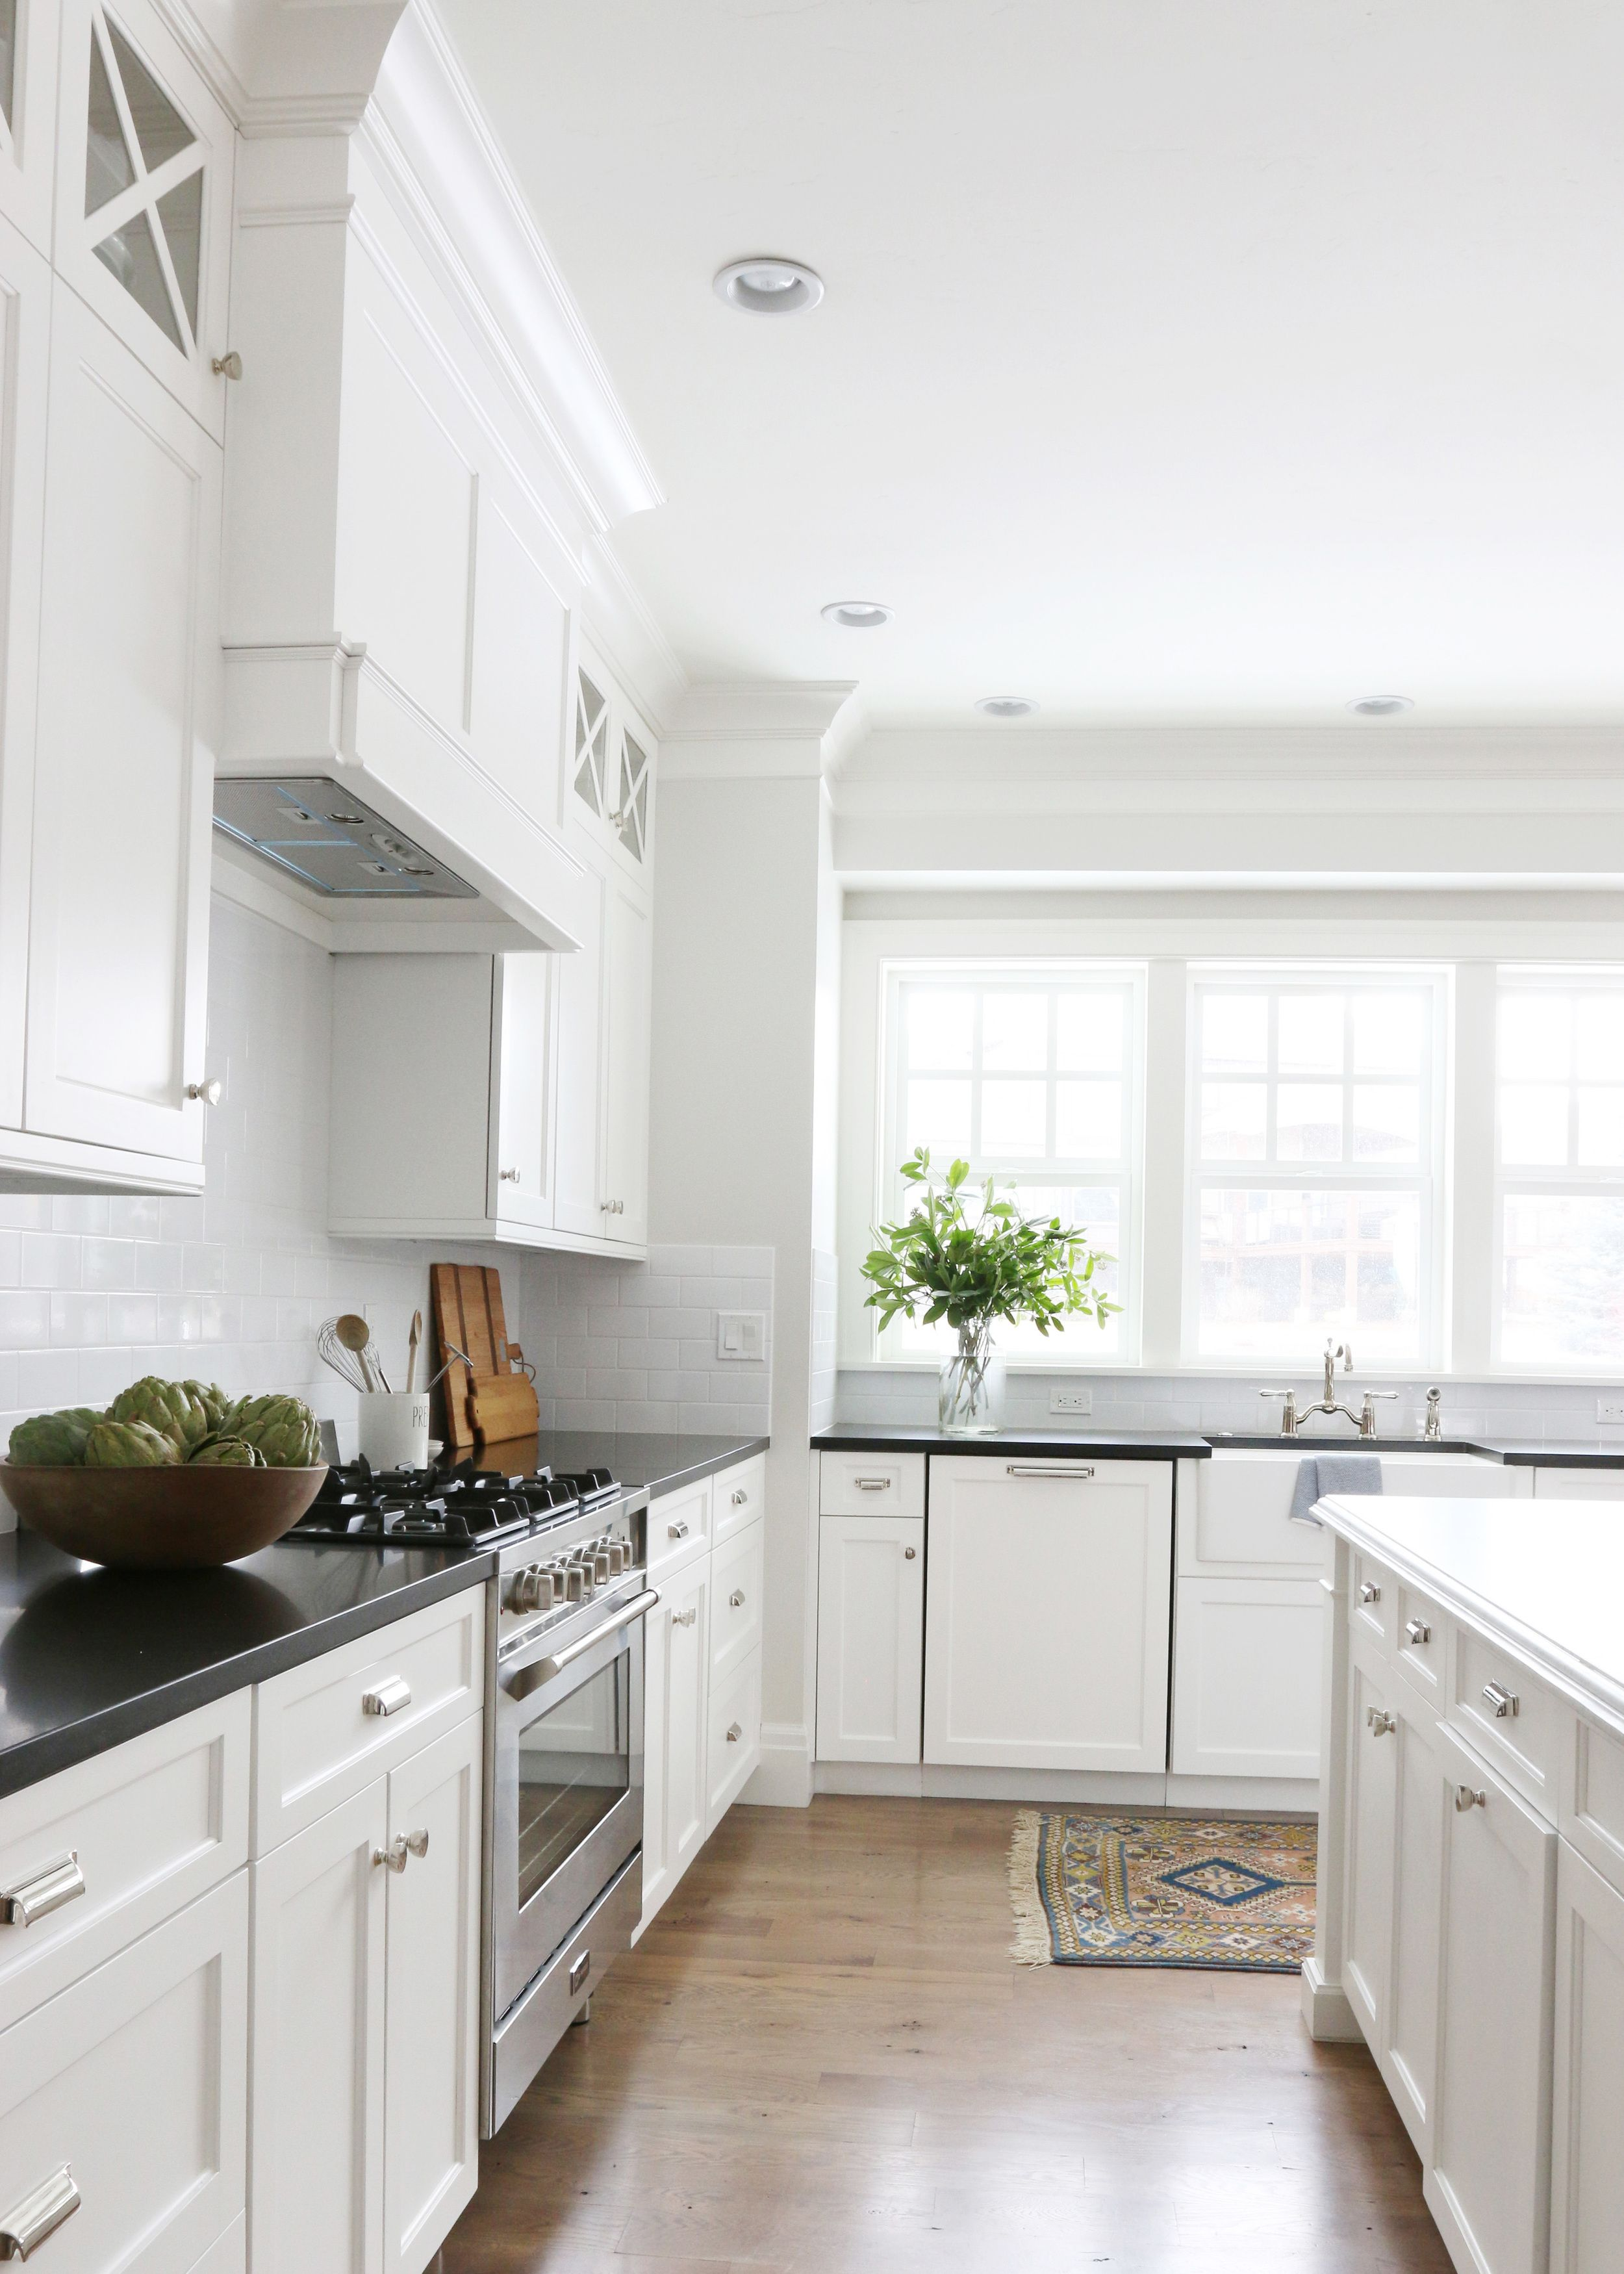 The Midway House: Kitchen | Rug studio, Studio mcgee and Sinks